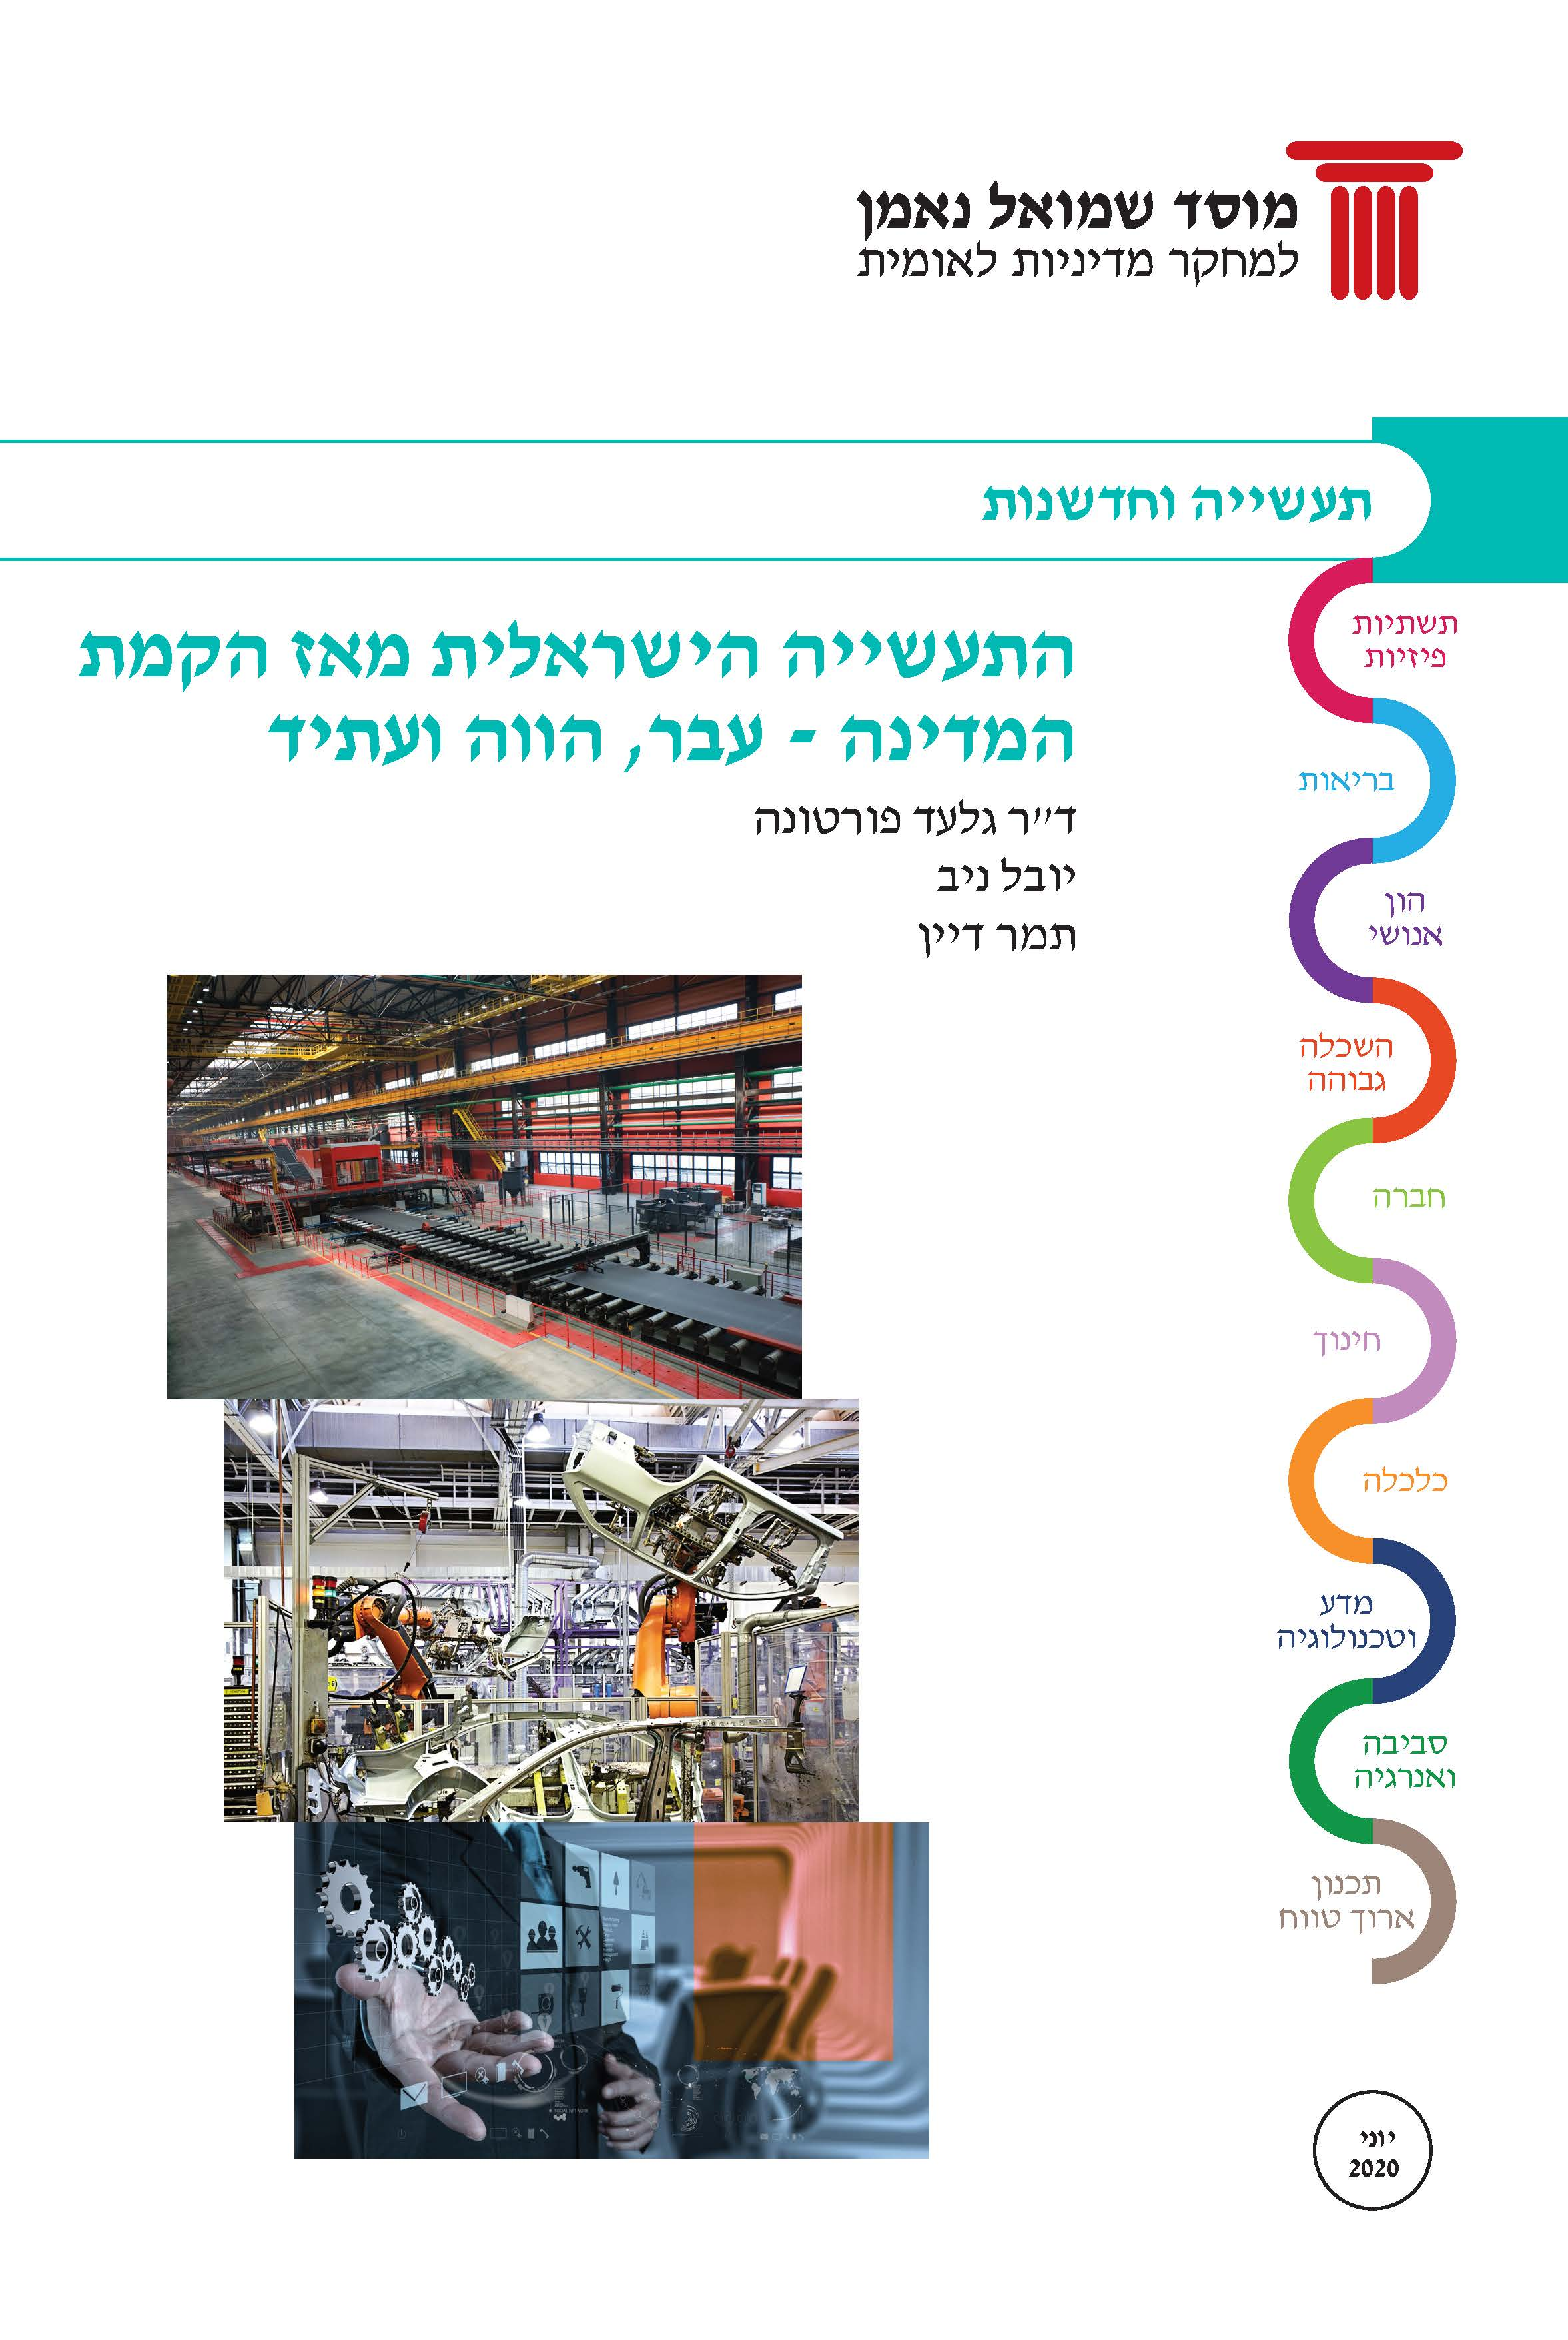 The Israeli Industry since the establishment of Israel -past, present and the future